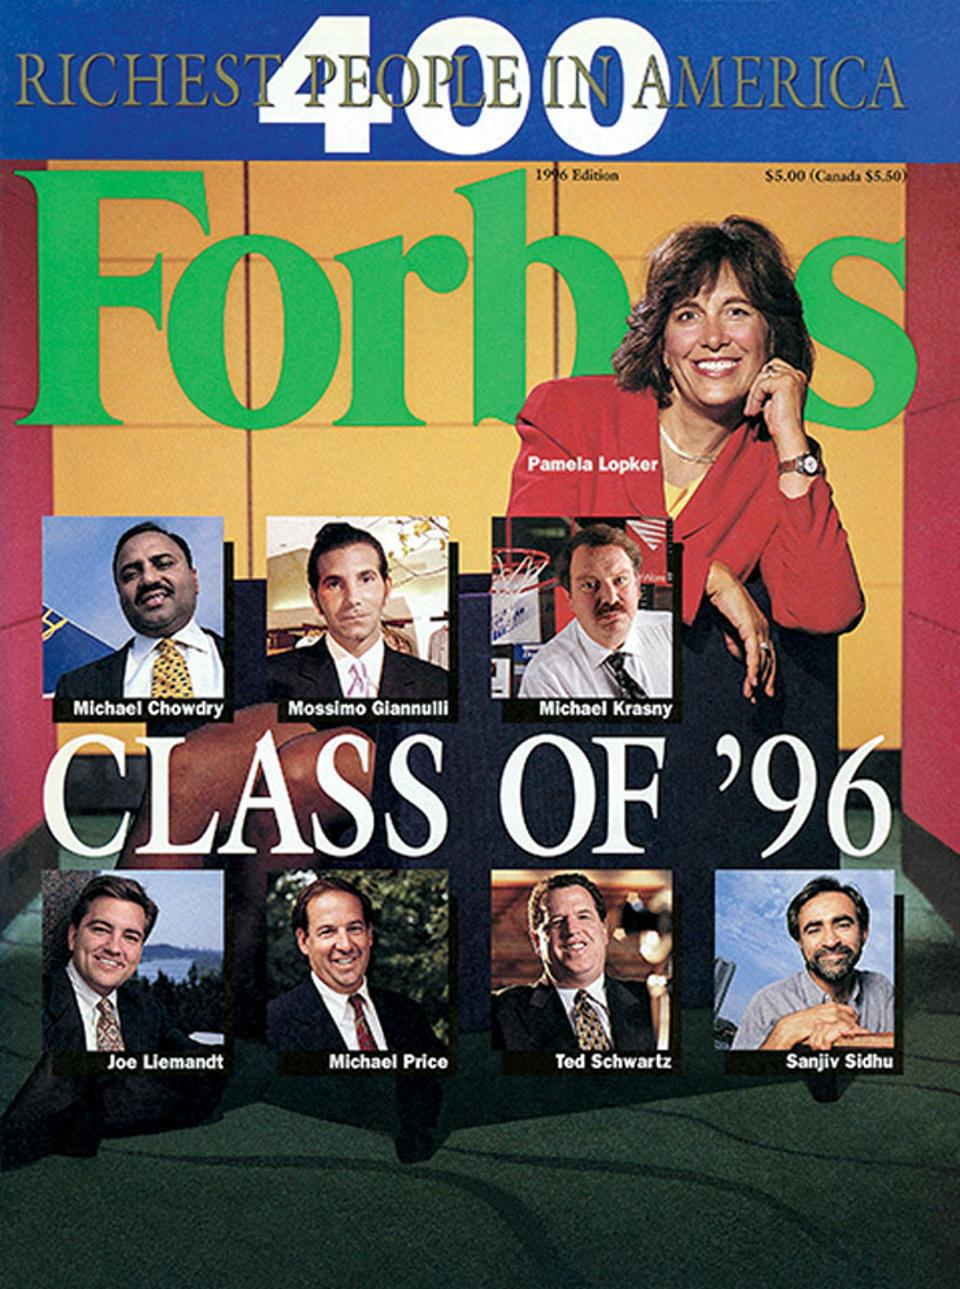 A few months after first profiling Joe Liemandt, Forbes put the 28-year-old entrepreneur on the cover of that year's Forbes 400.